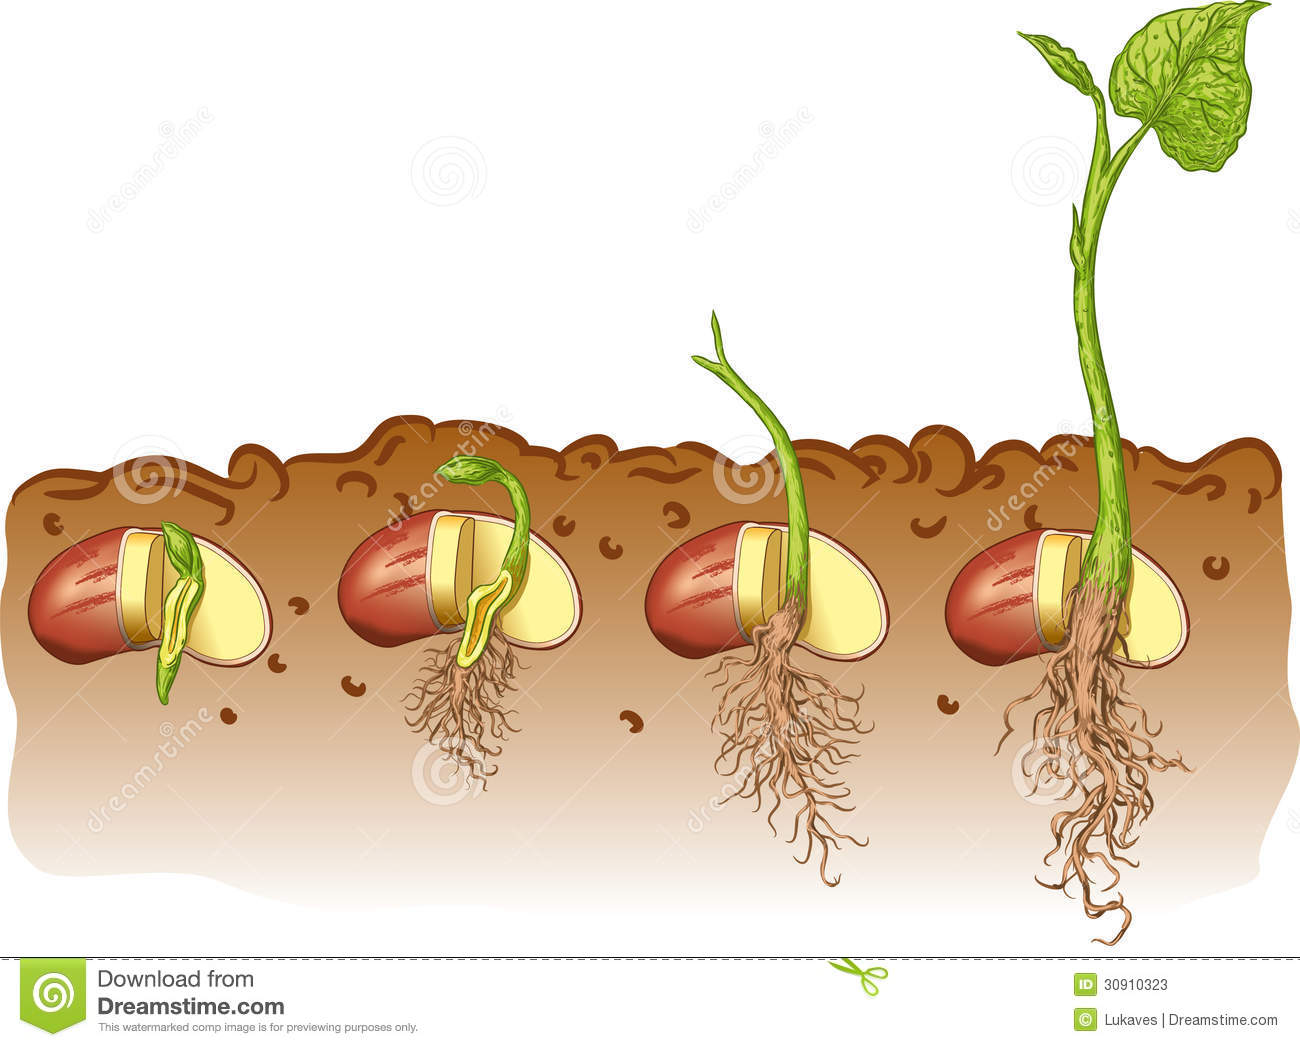 Vector illustration growth of bean plants.